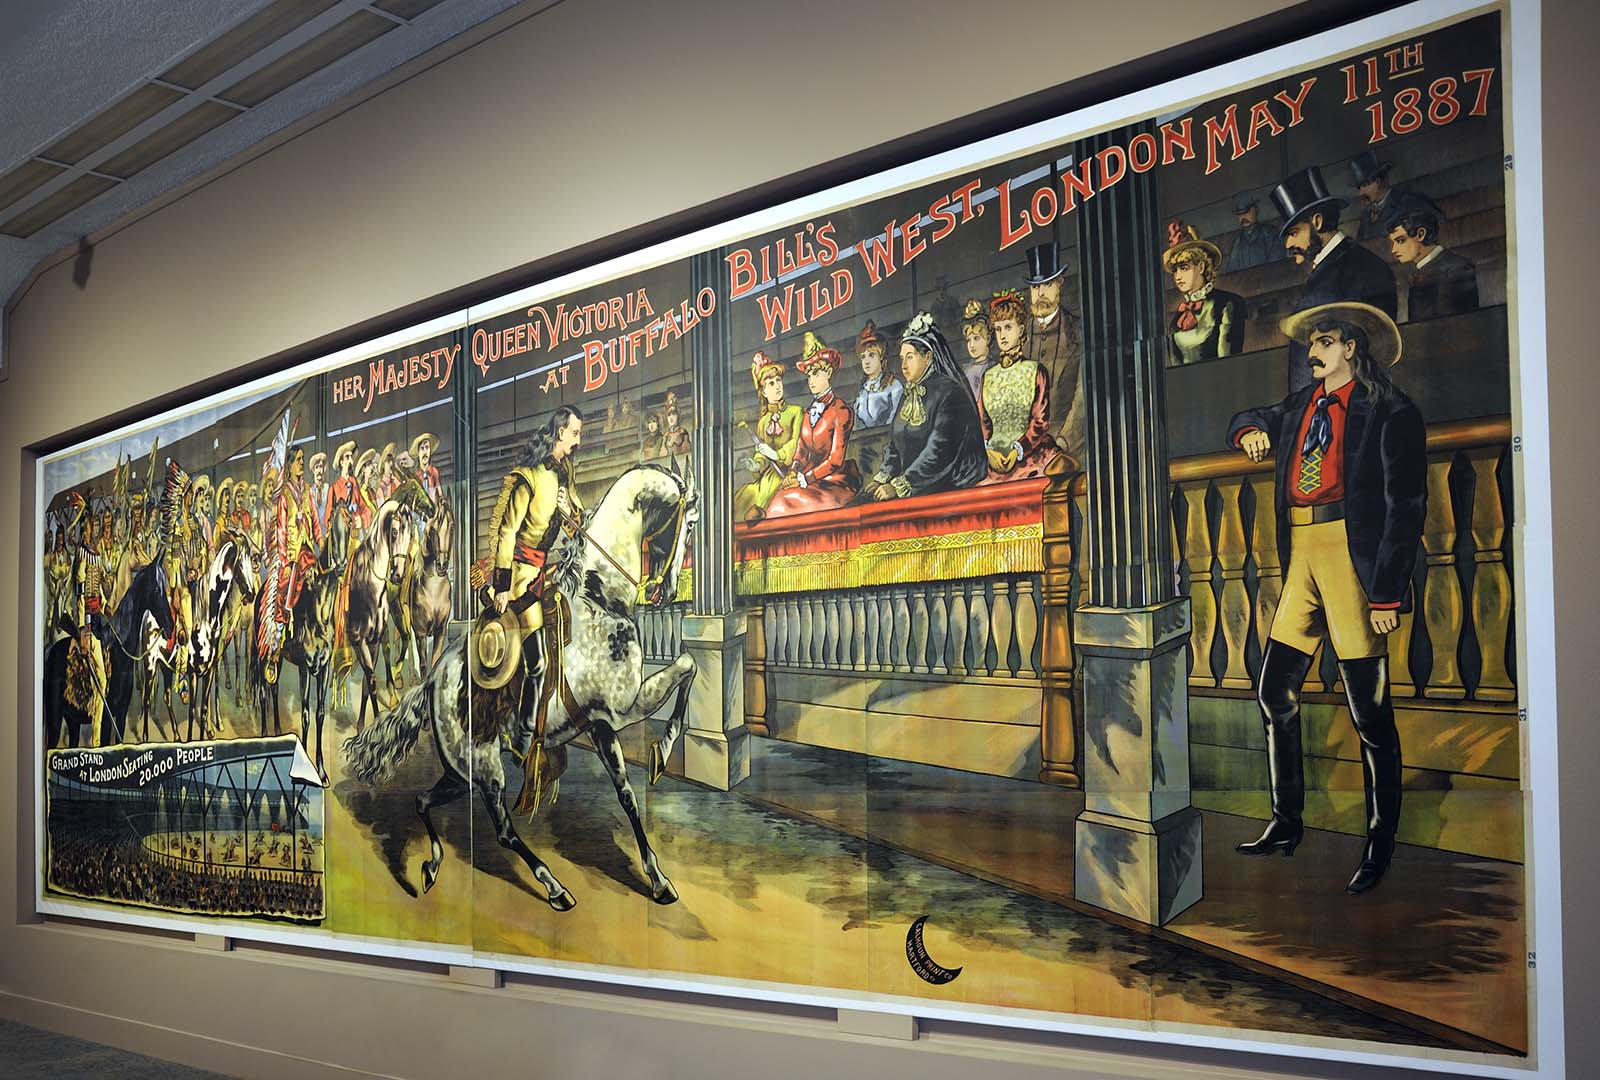 Queen Victoria at the Wild West poster, Buffalo Bill Museum, 2012.